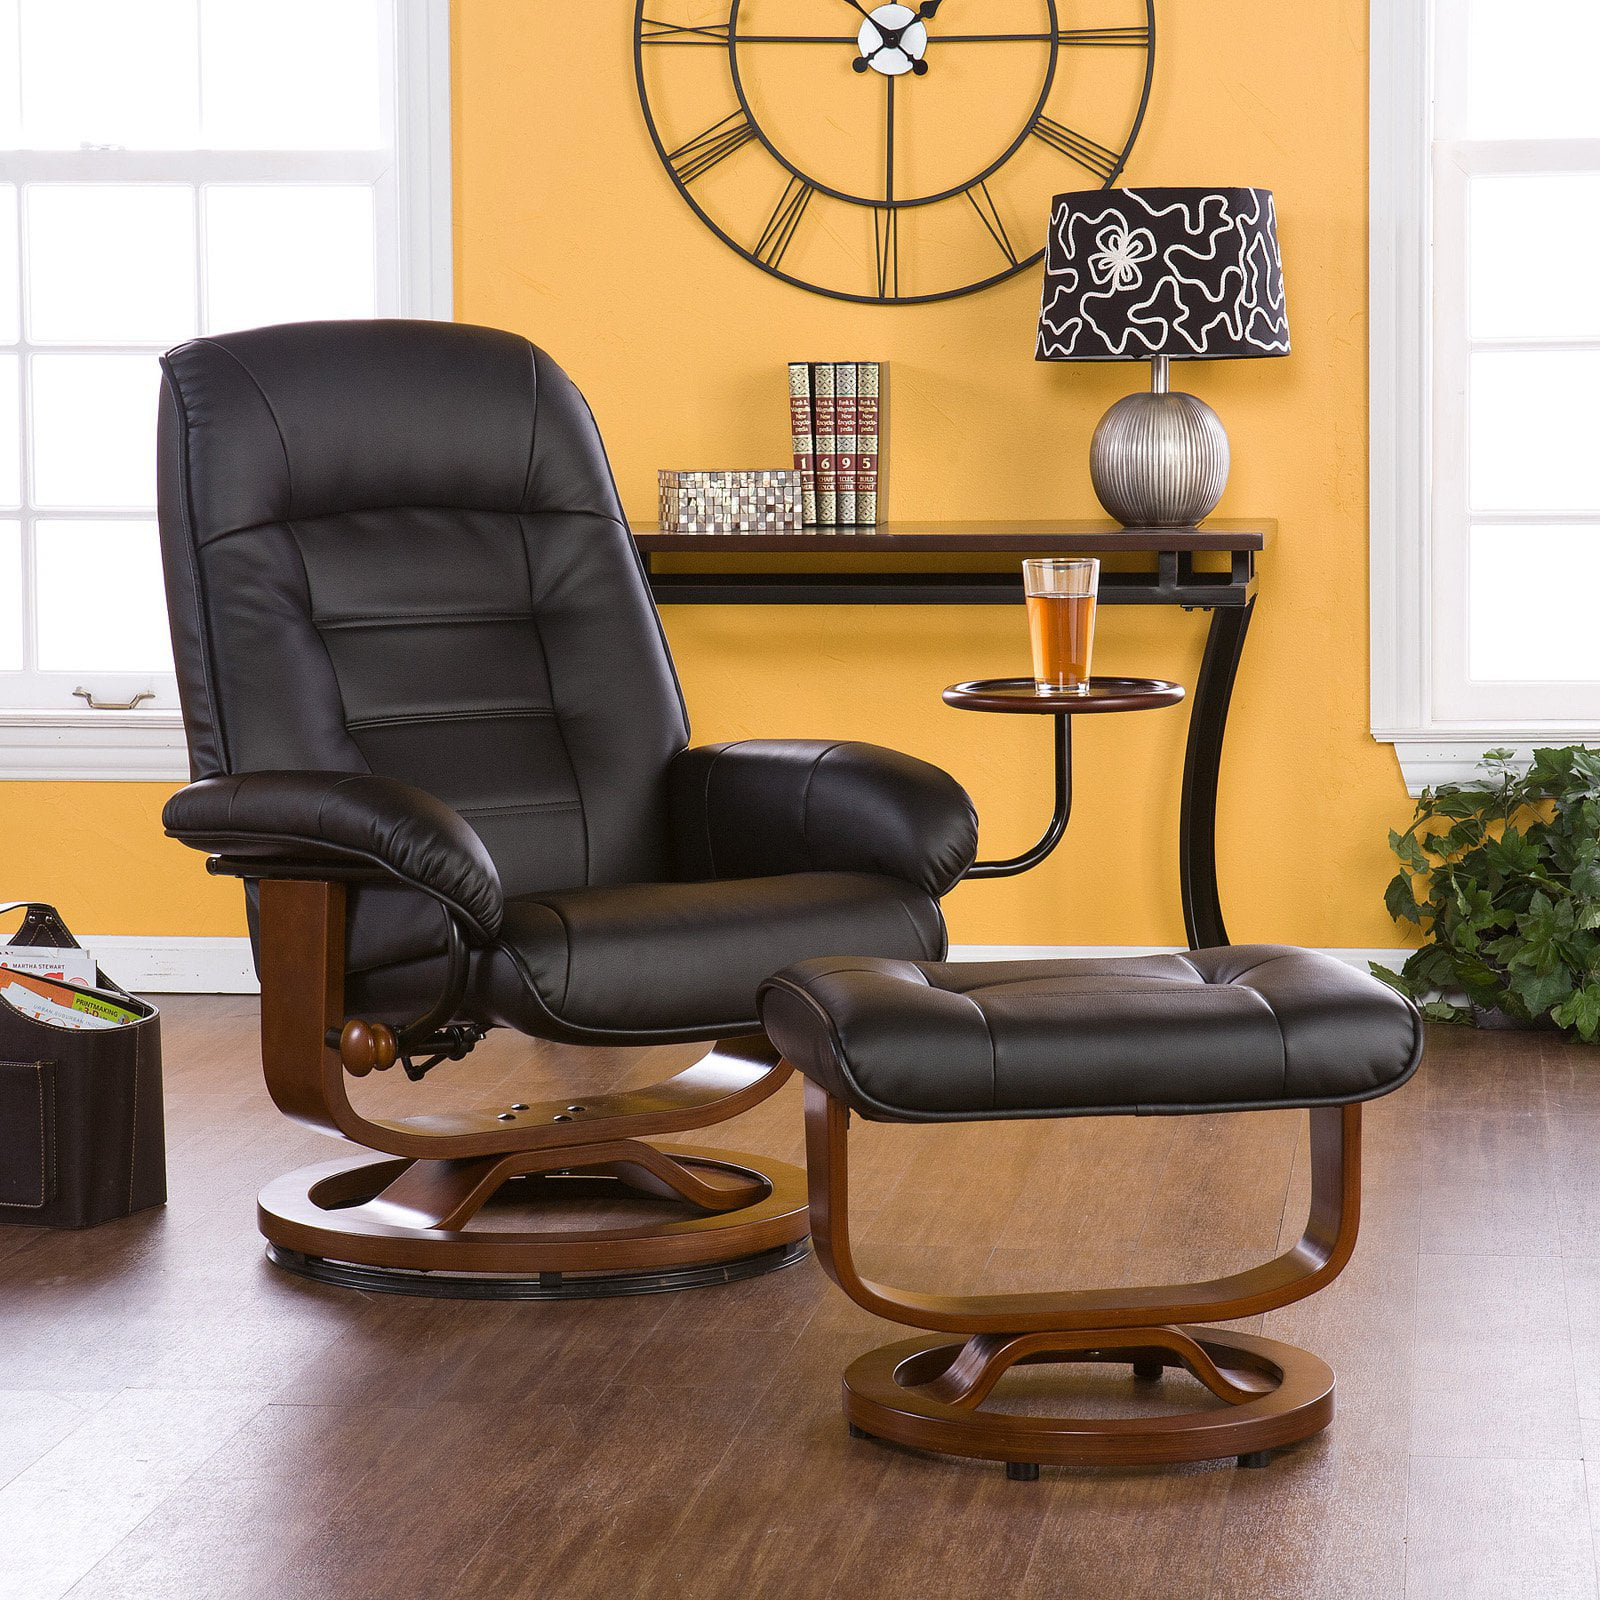 room inspiration sale recliner rocker lane recliners in swivel furniture top house living your